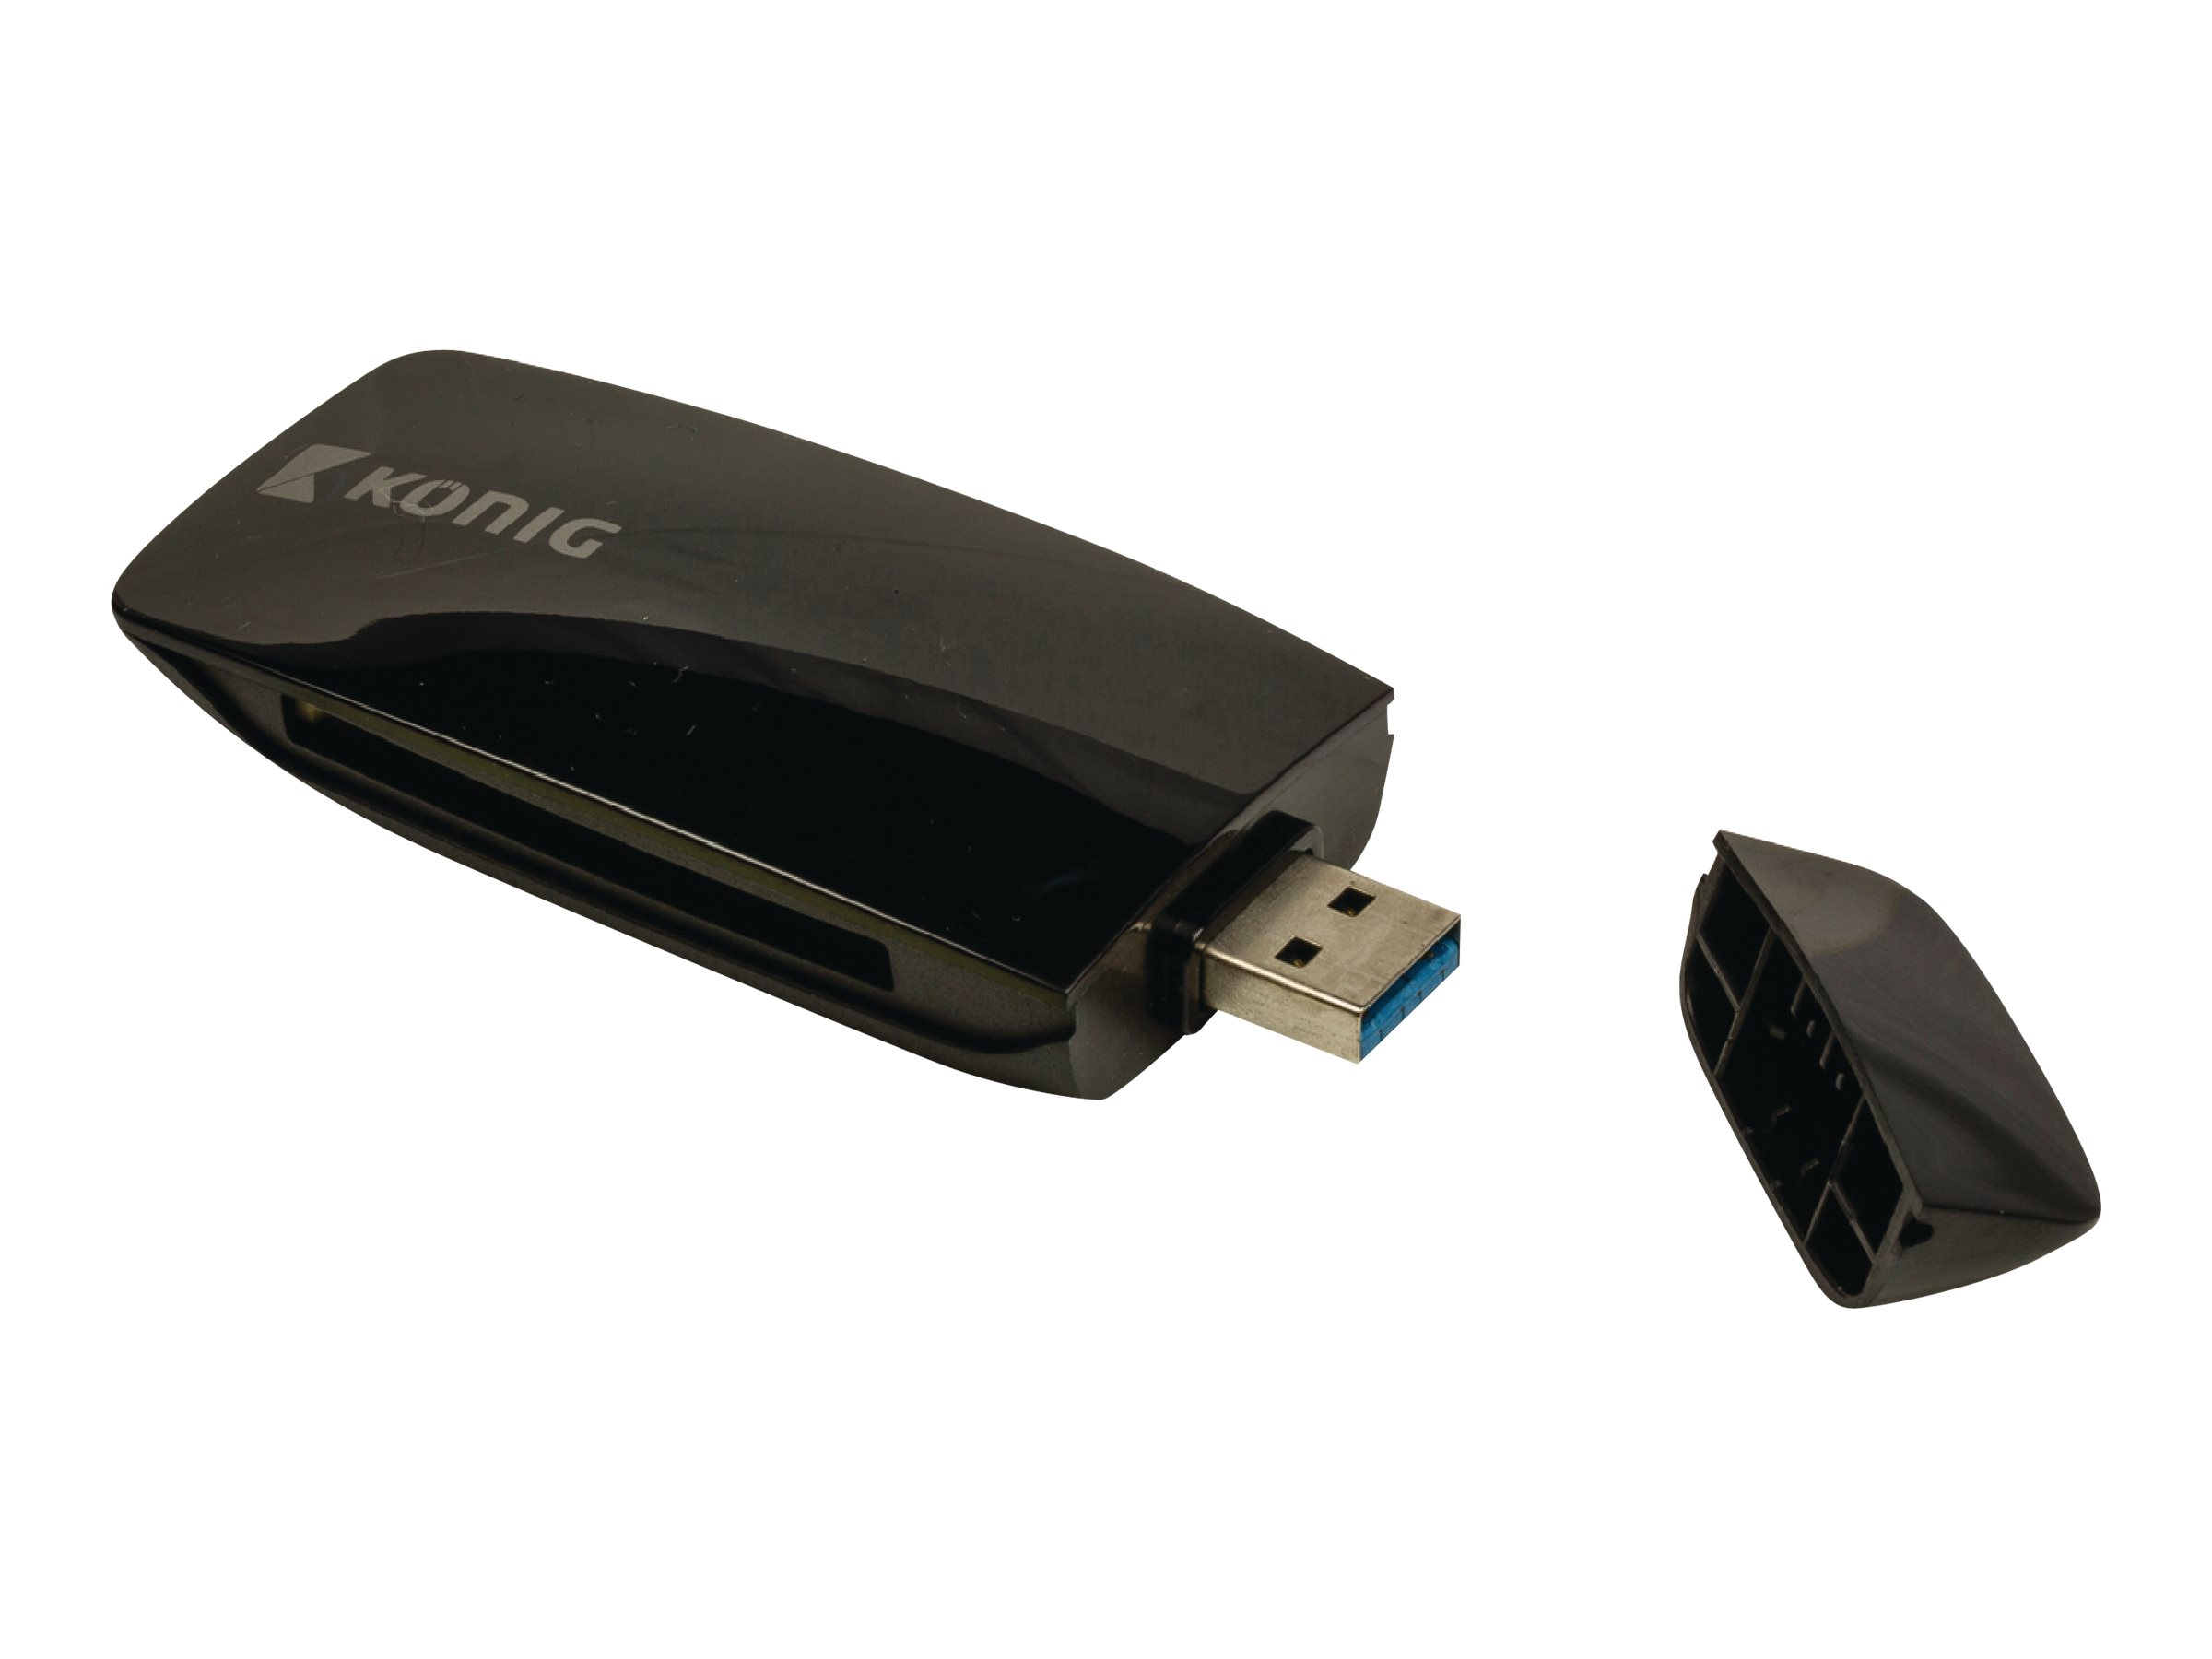 König - Kartenleser - All-in-one (MS, SD, microSD, MS Micro) - USB 3.0